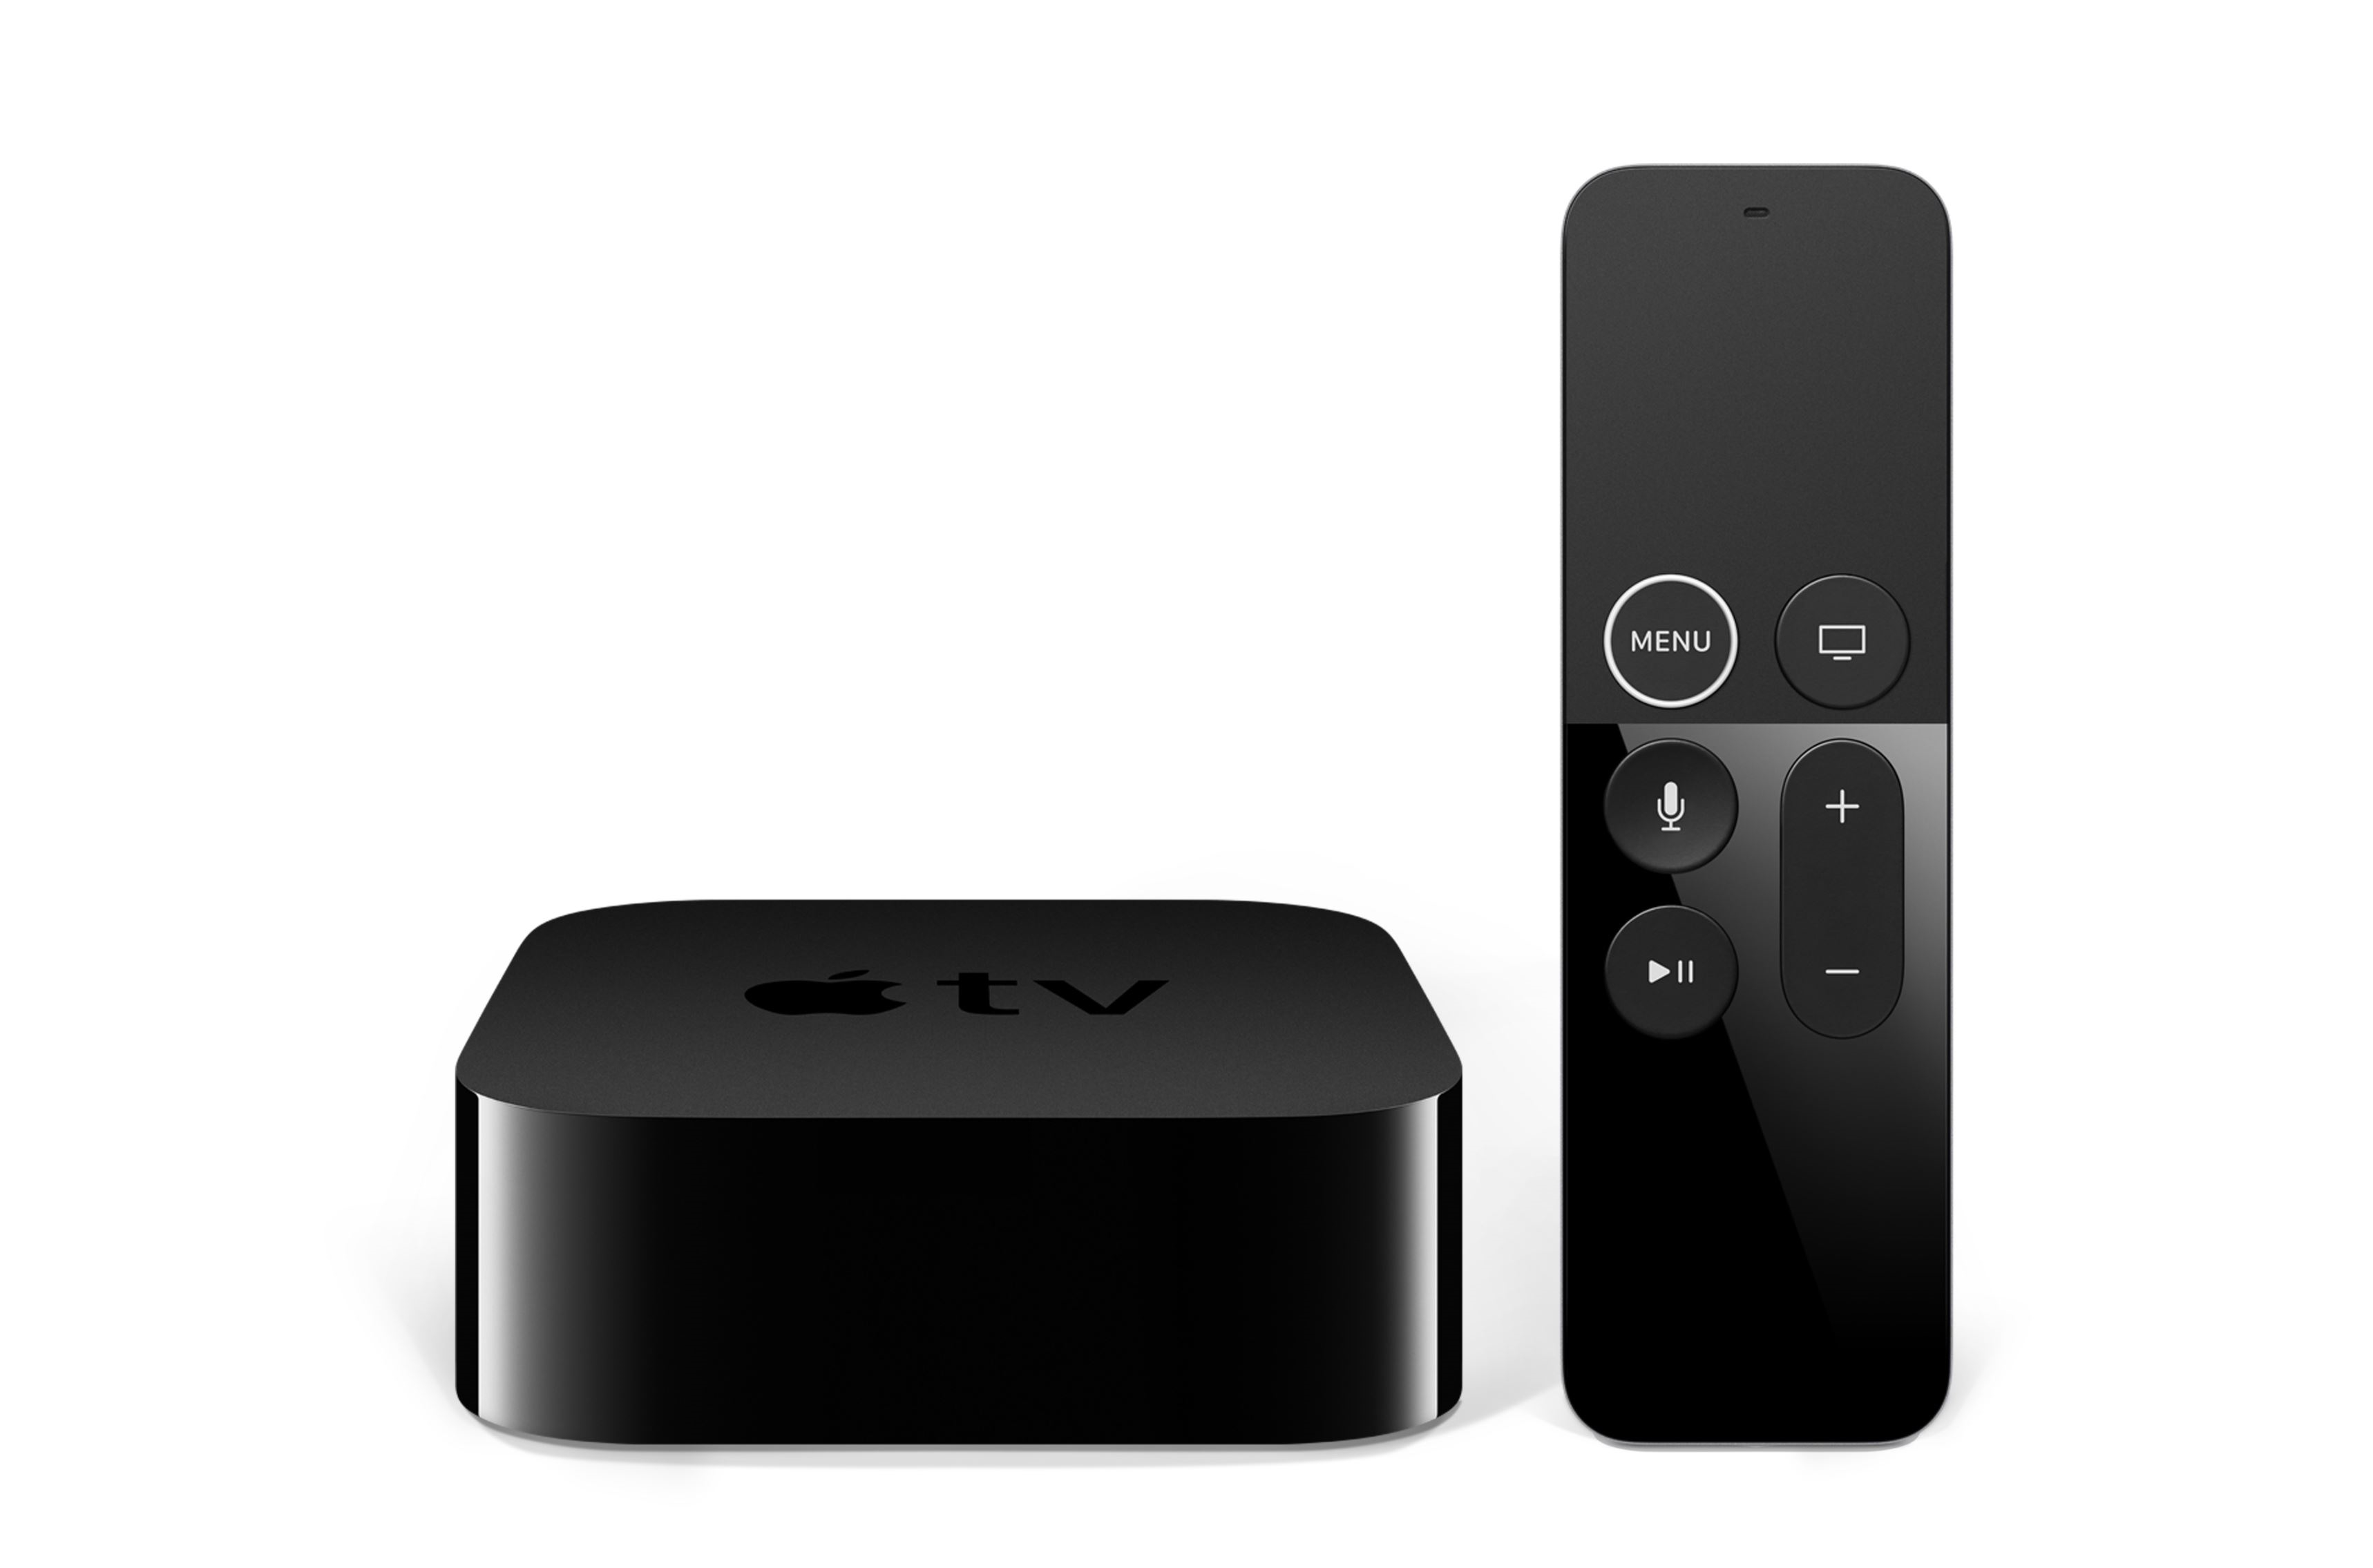 Apple TV's 4K movie pricing is exactly what the 4K world needs | DeviceDaily.com